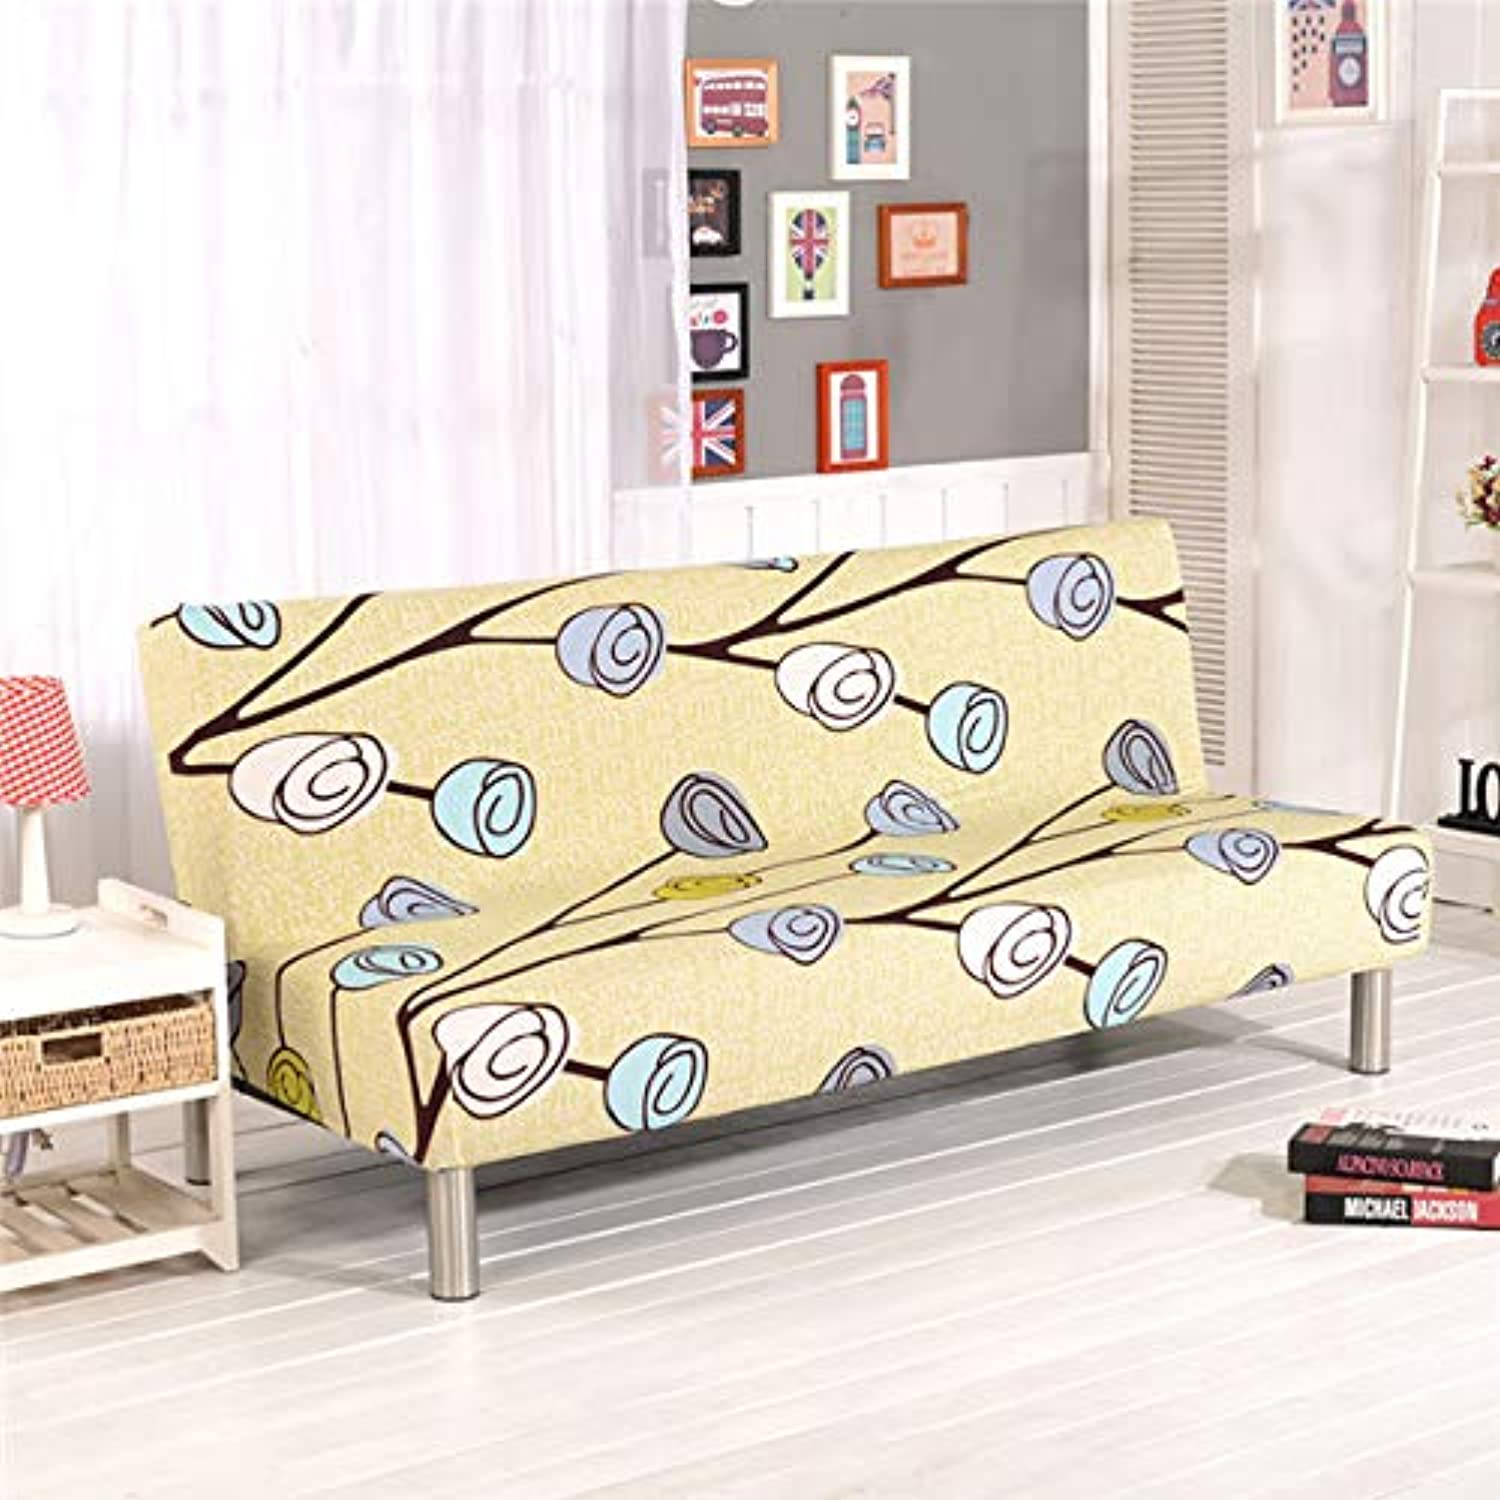 New Drop Shipping Solid color Soft All-Inclusive Fabric Cover Sofa Slipcover Elastic Sofa Cover Couch Cover for 1 2 3 4 Seats   SC01211, Double Seater